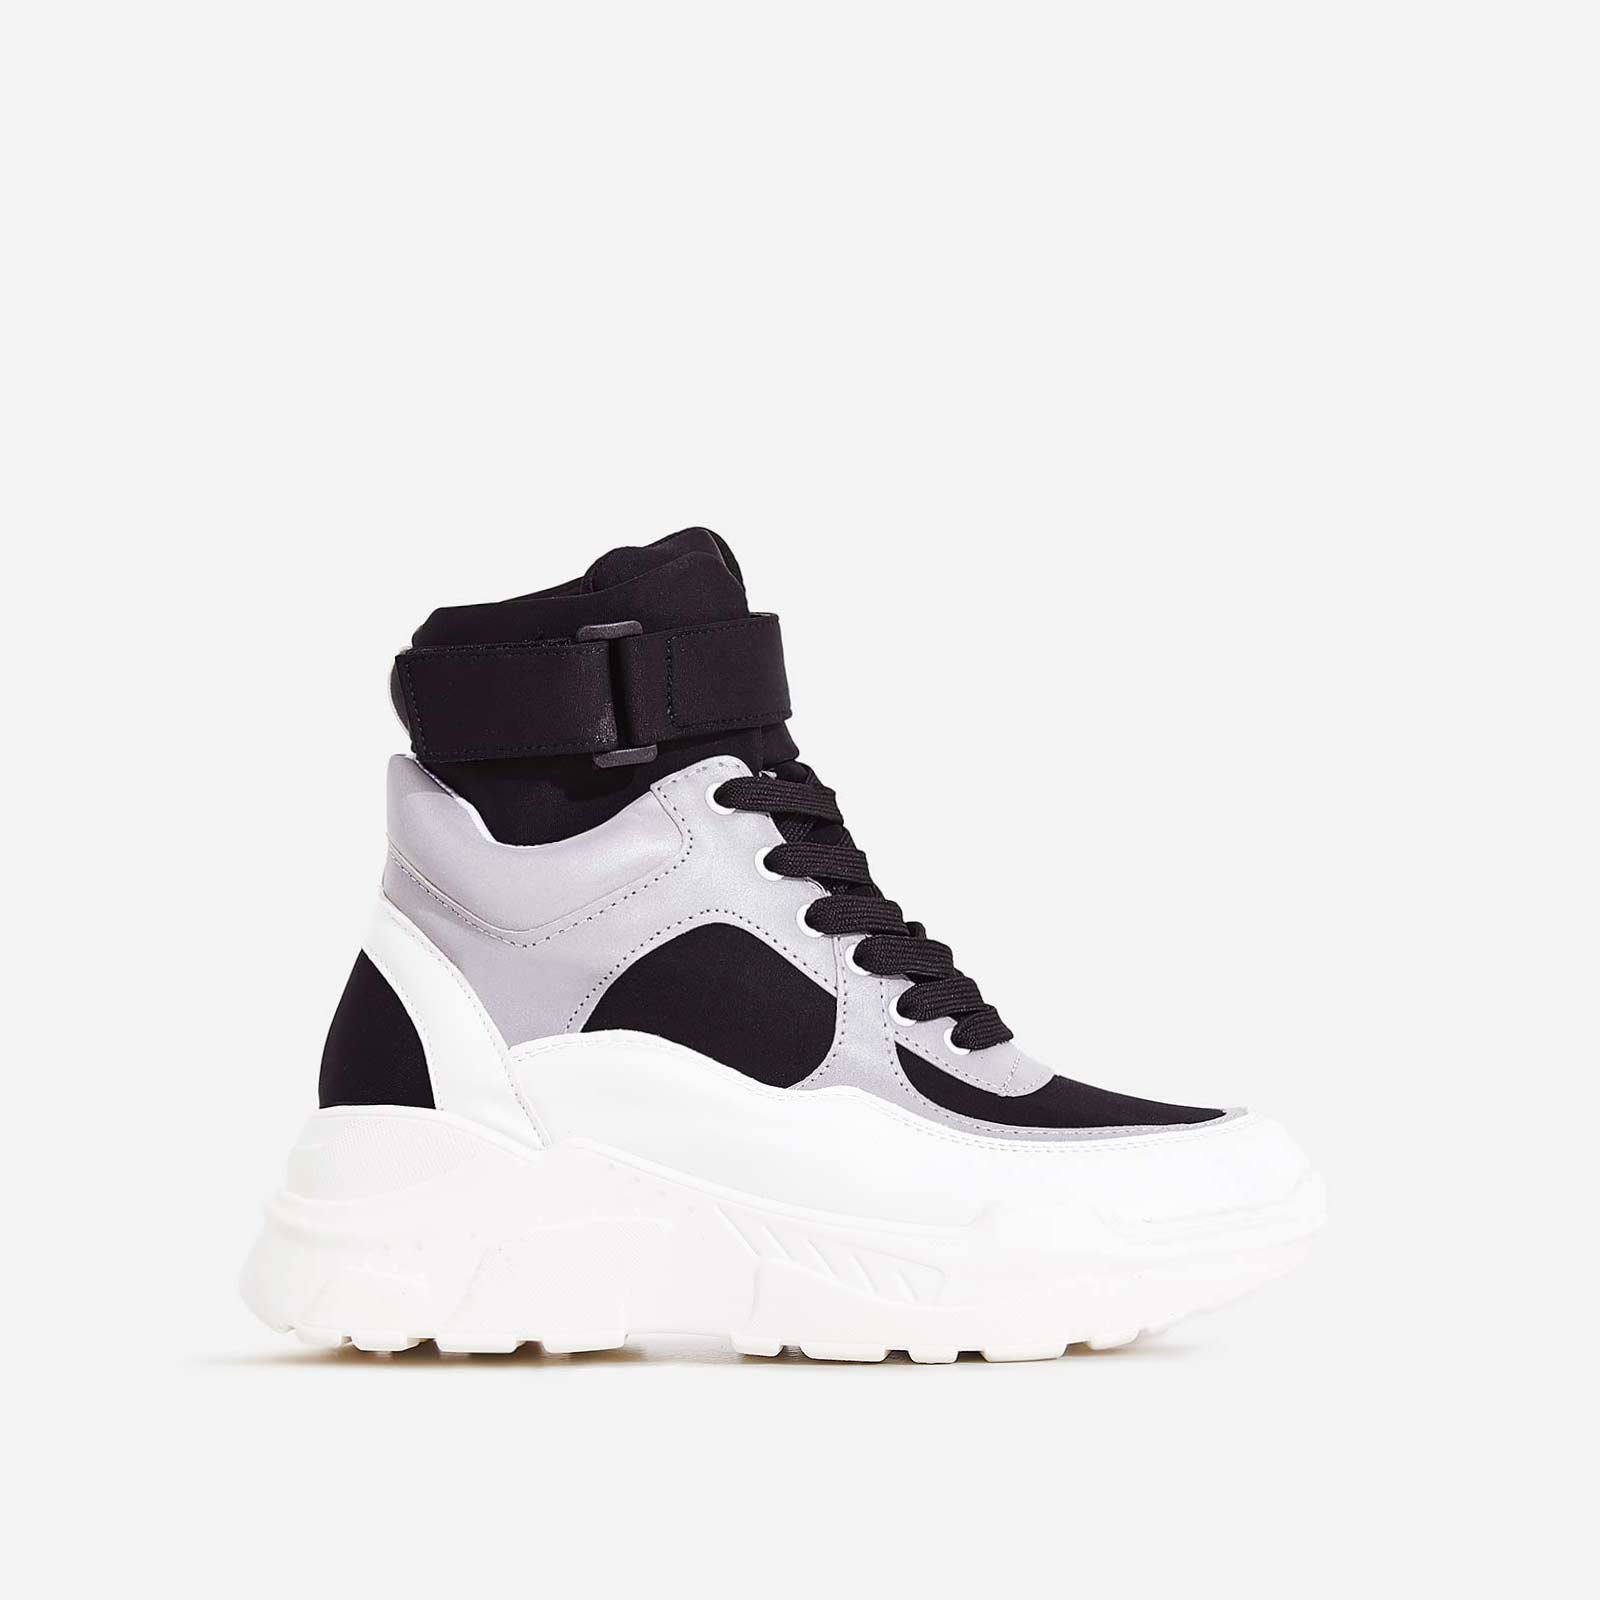 Coco High Top Reflective Trainer In Black